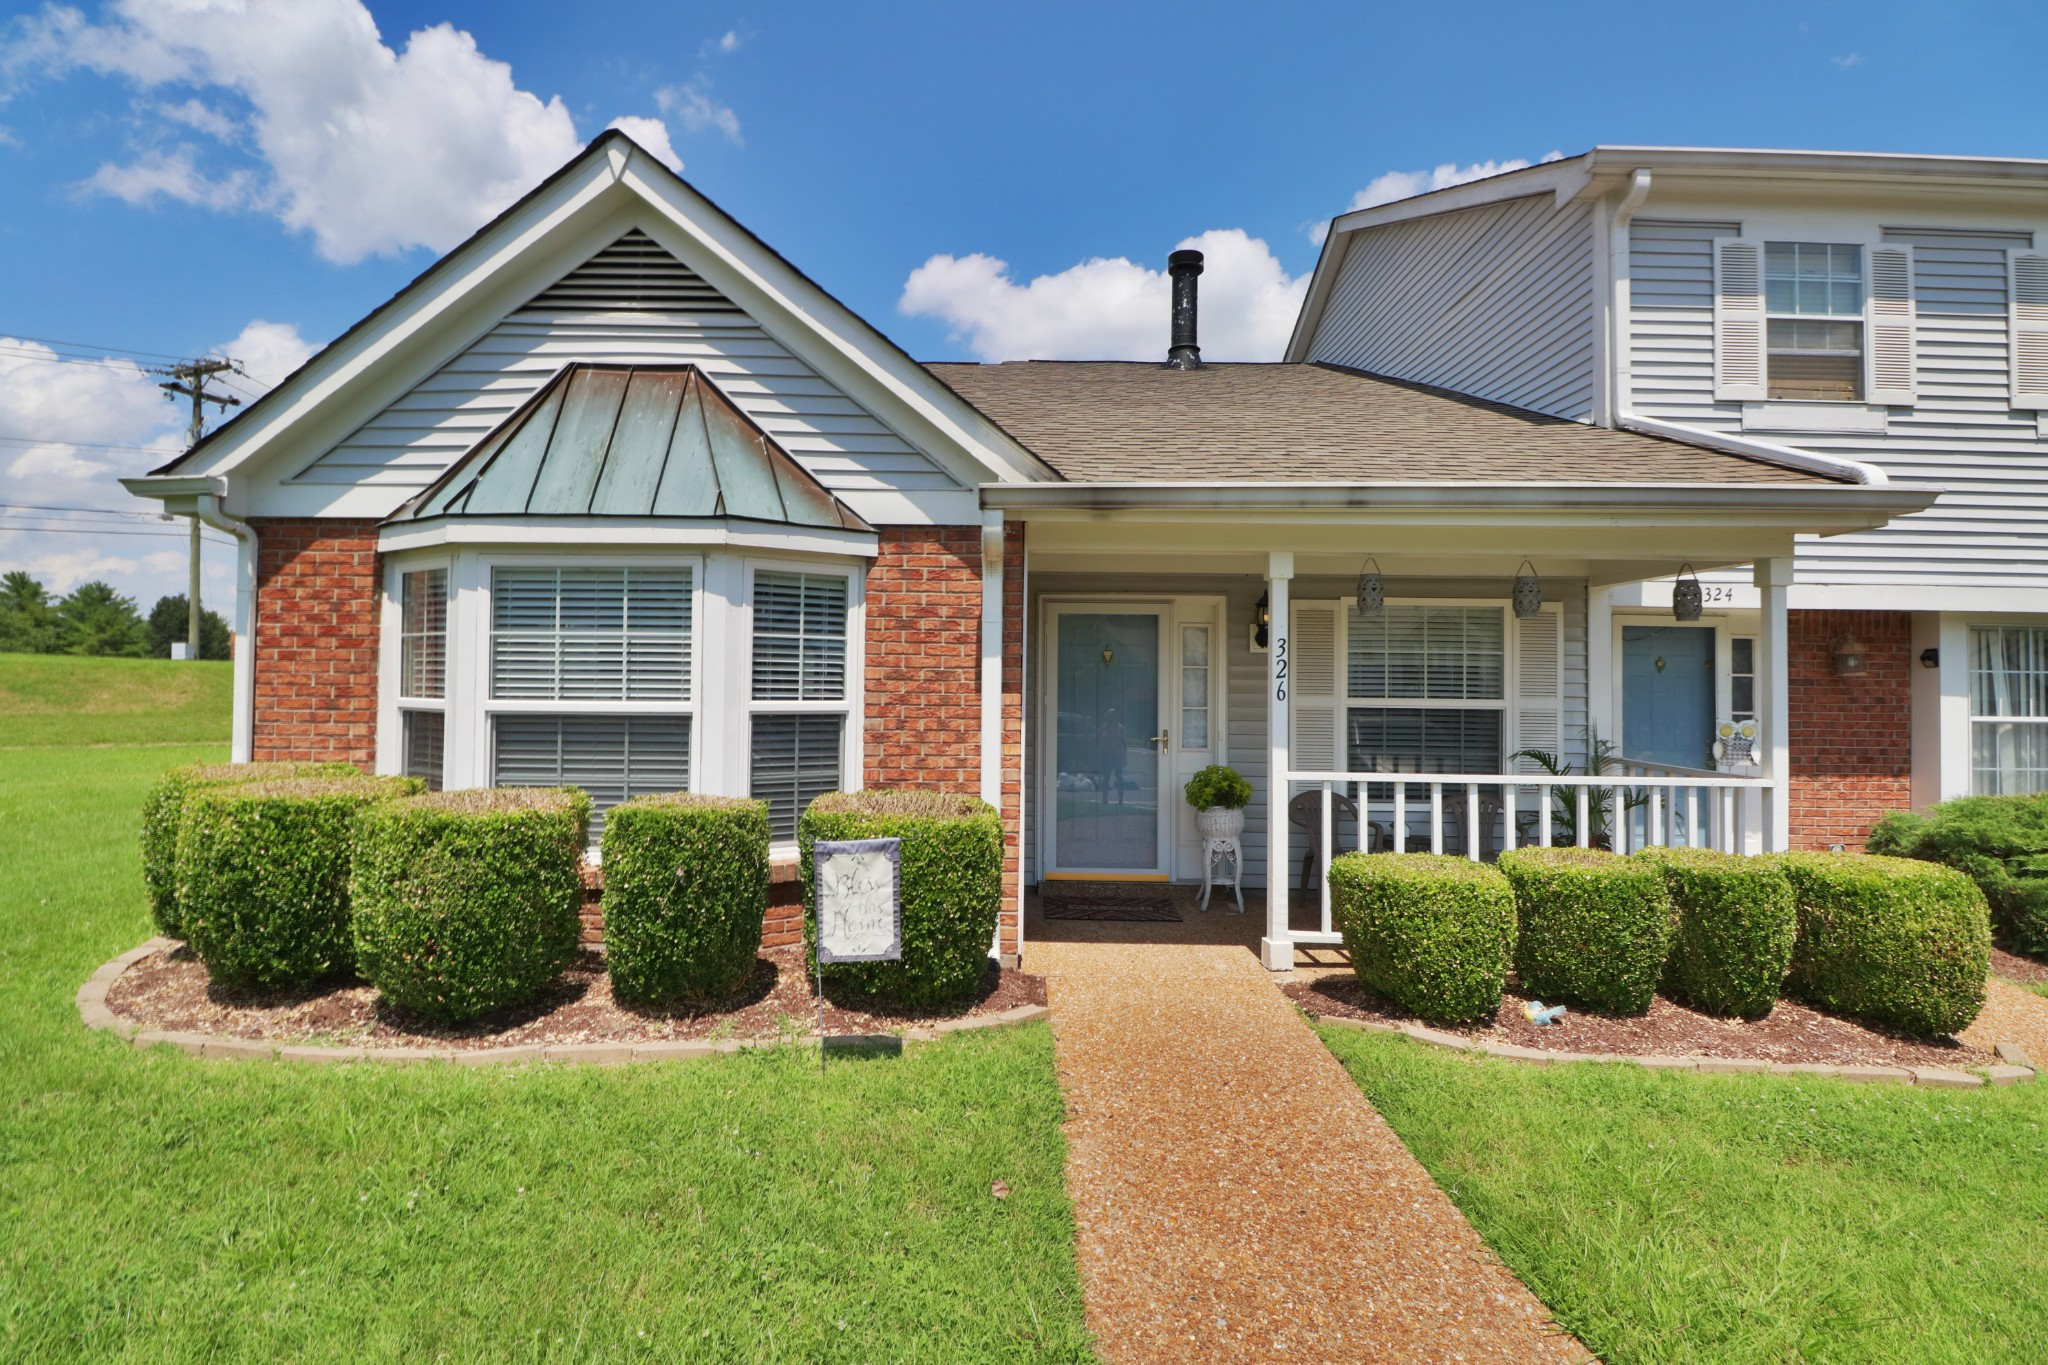 326 Ash Forge Dr Property Photo - Antioch, TN real estate listing